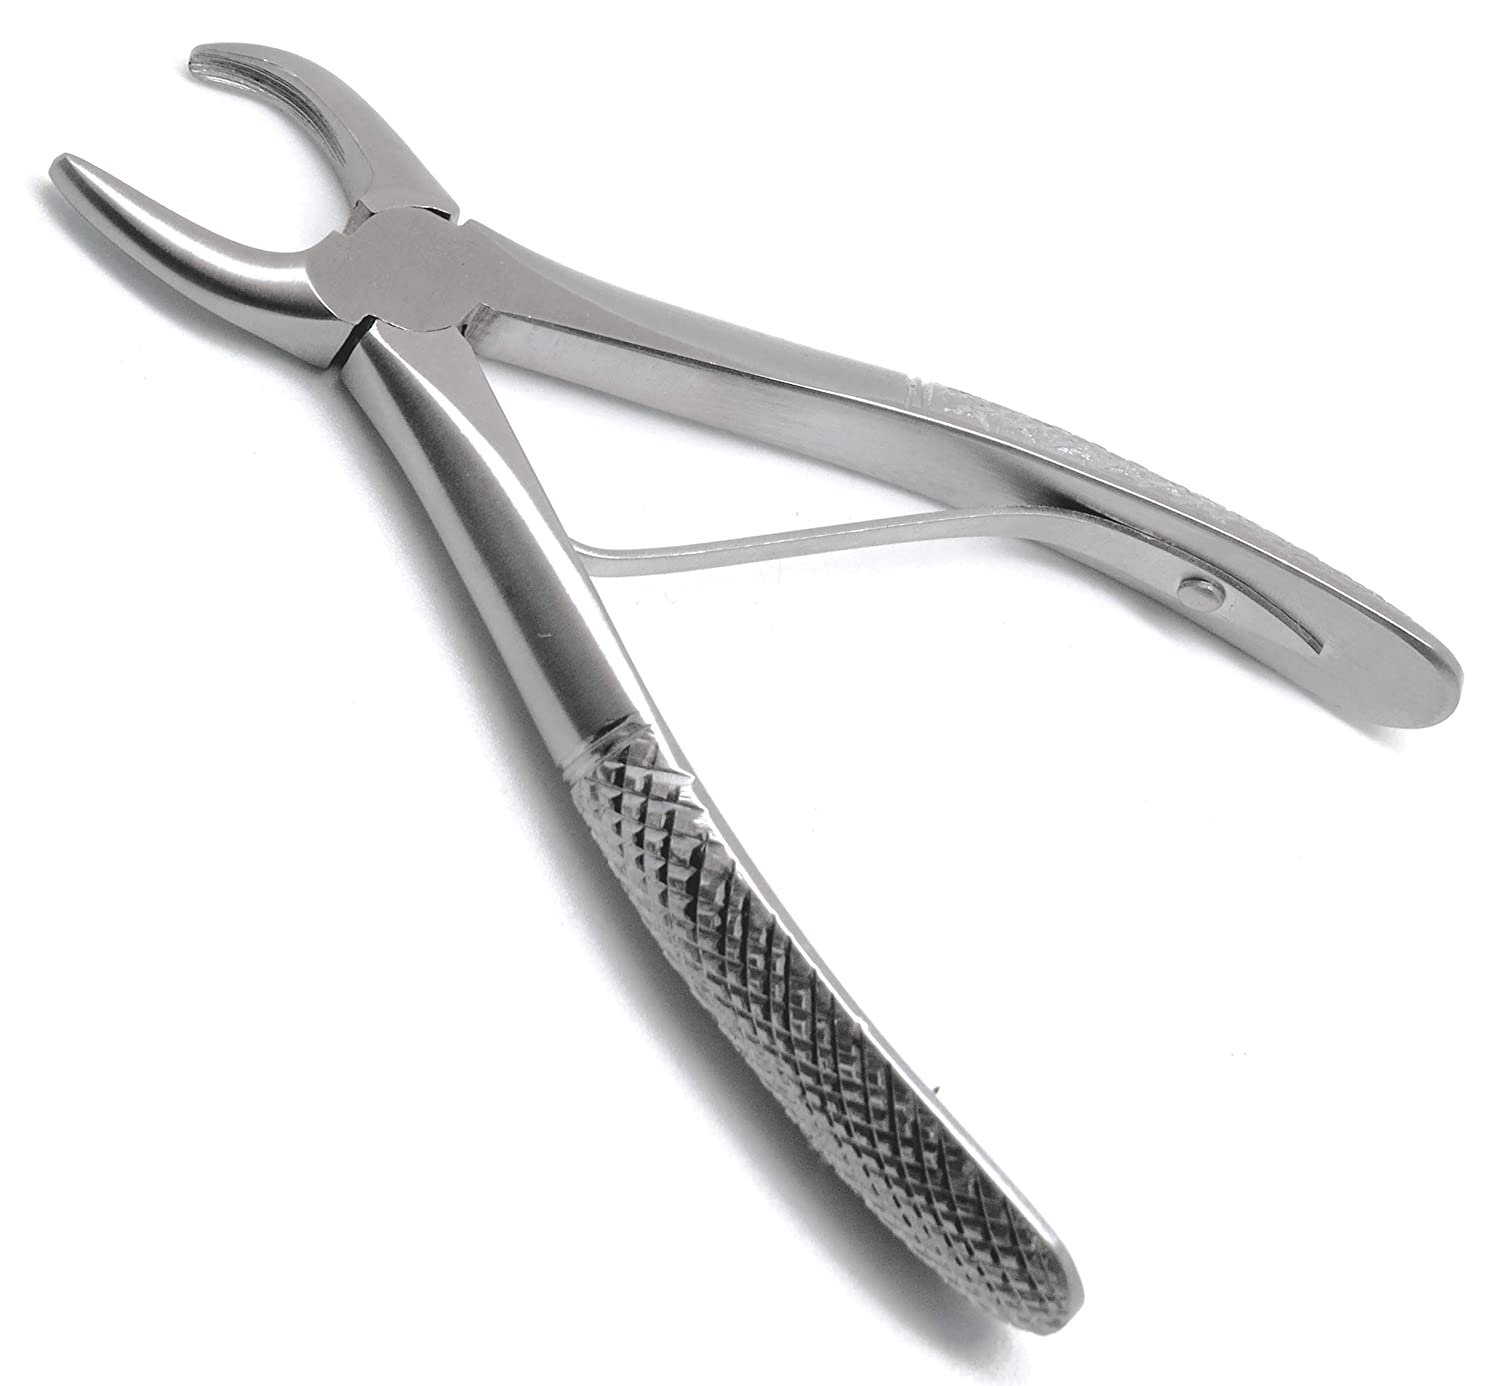 Tartar Forcep Calculus Shipping included Remover Easy-to-use Tooth Scraper Dental Veterin 4.5